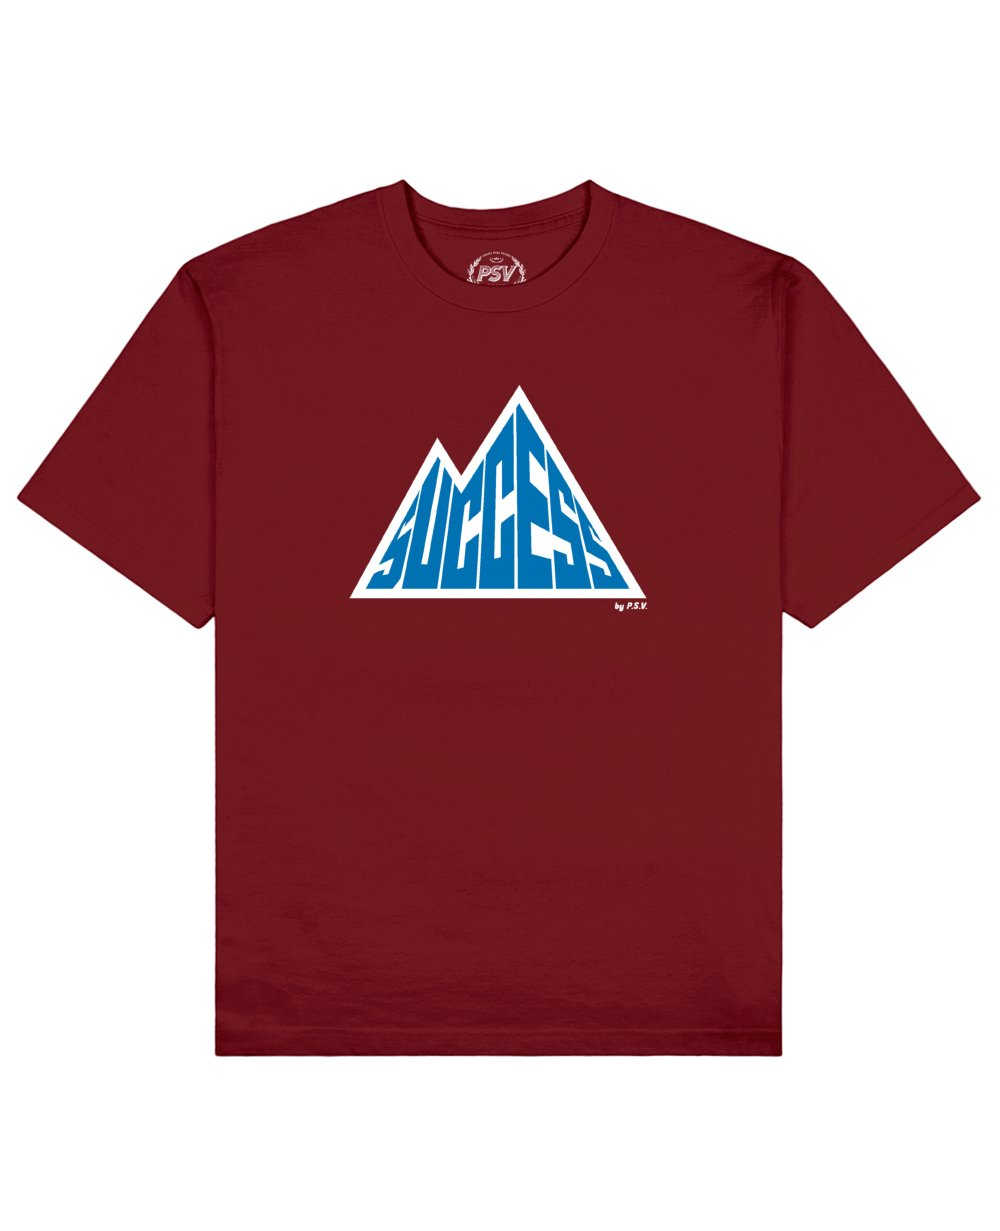 Success is a Mountain Print T-Shirt in Red - T-Shirts - PSV - BRANMA